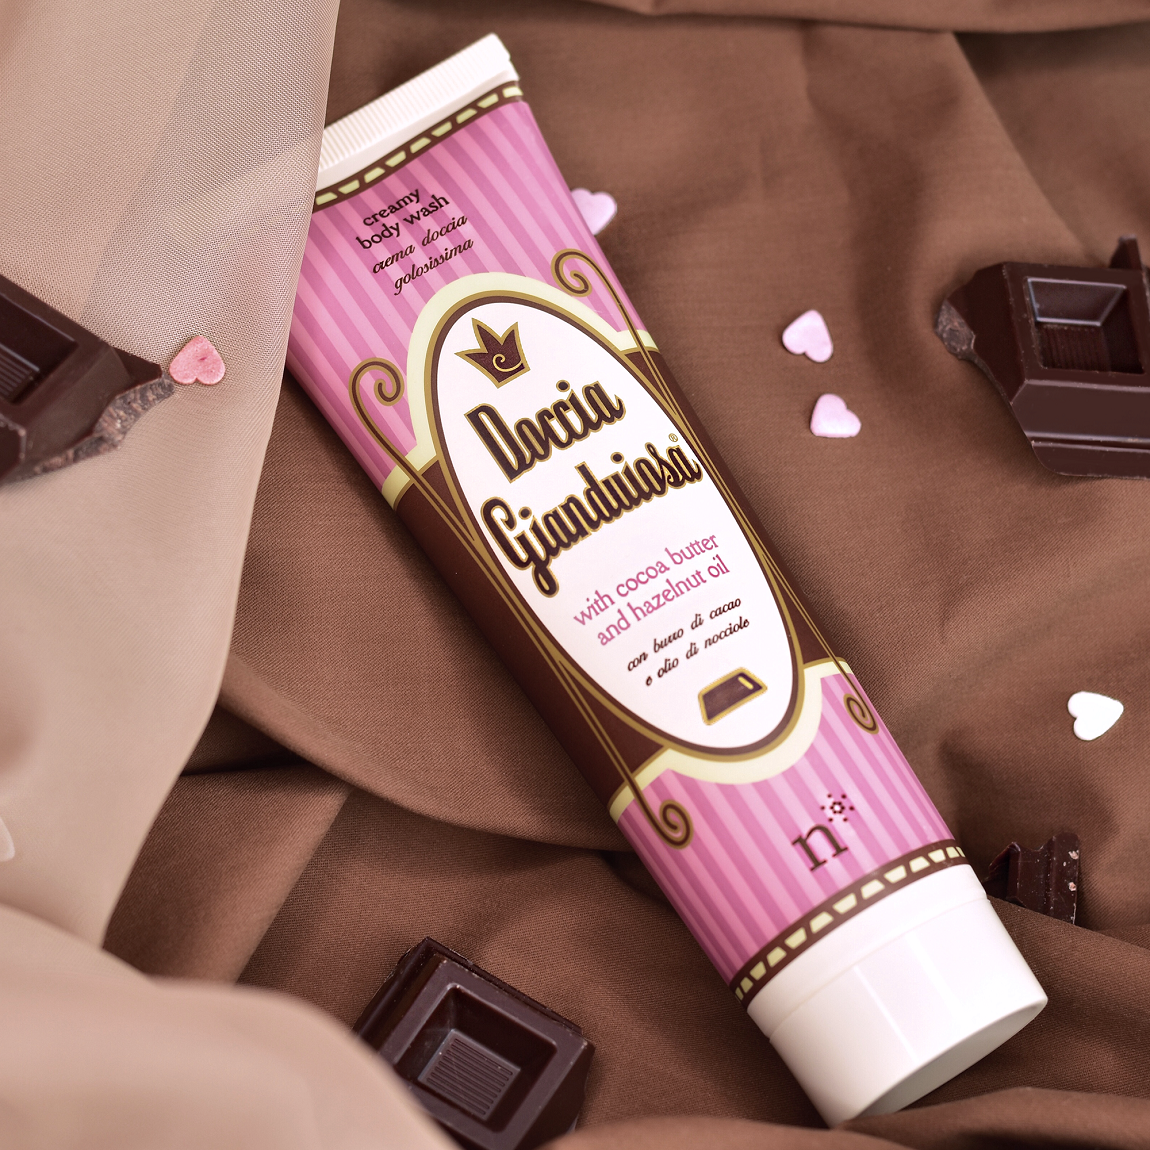 Gianduiosa shower: the delicate shower bath that smells of chocolate